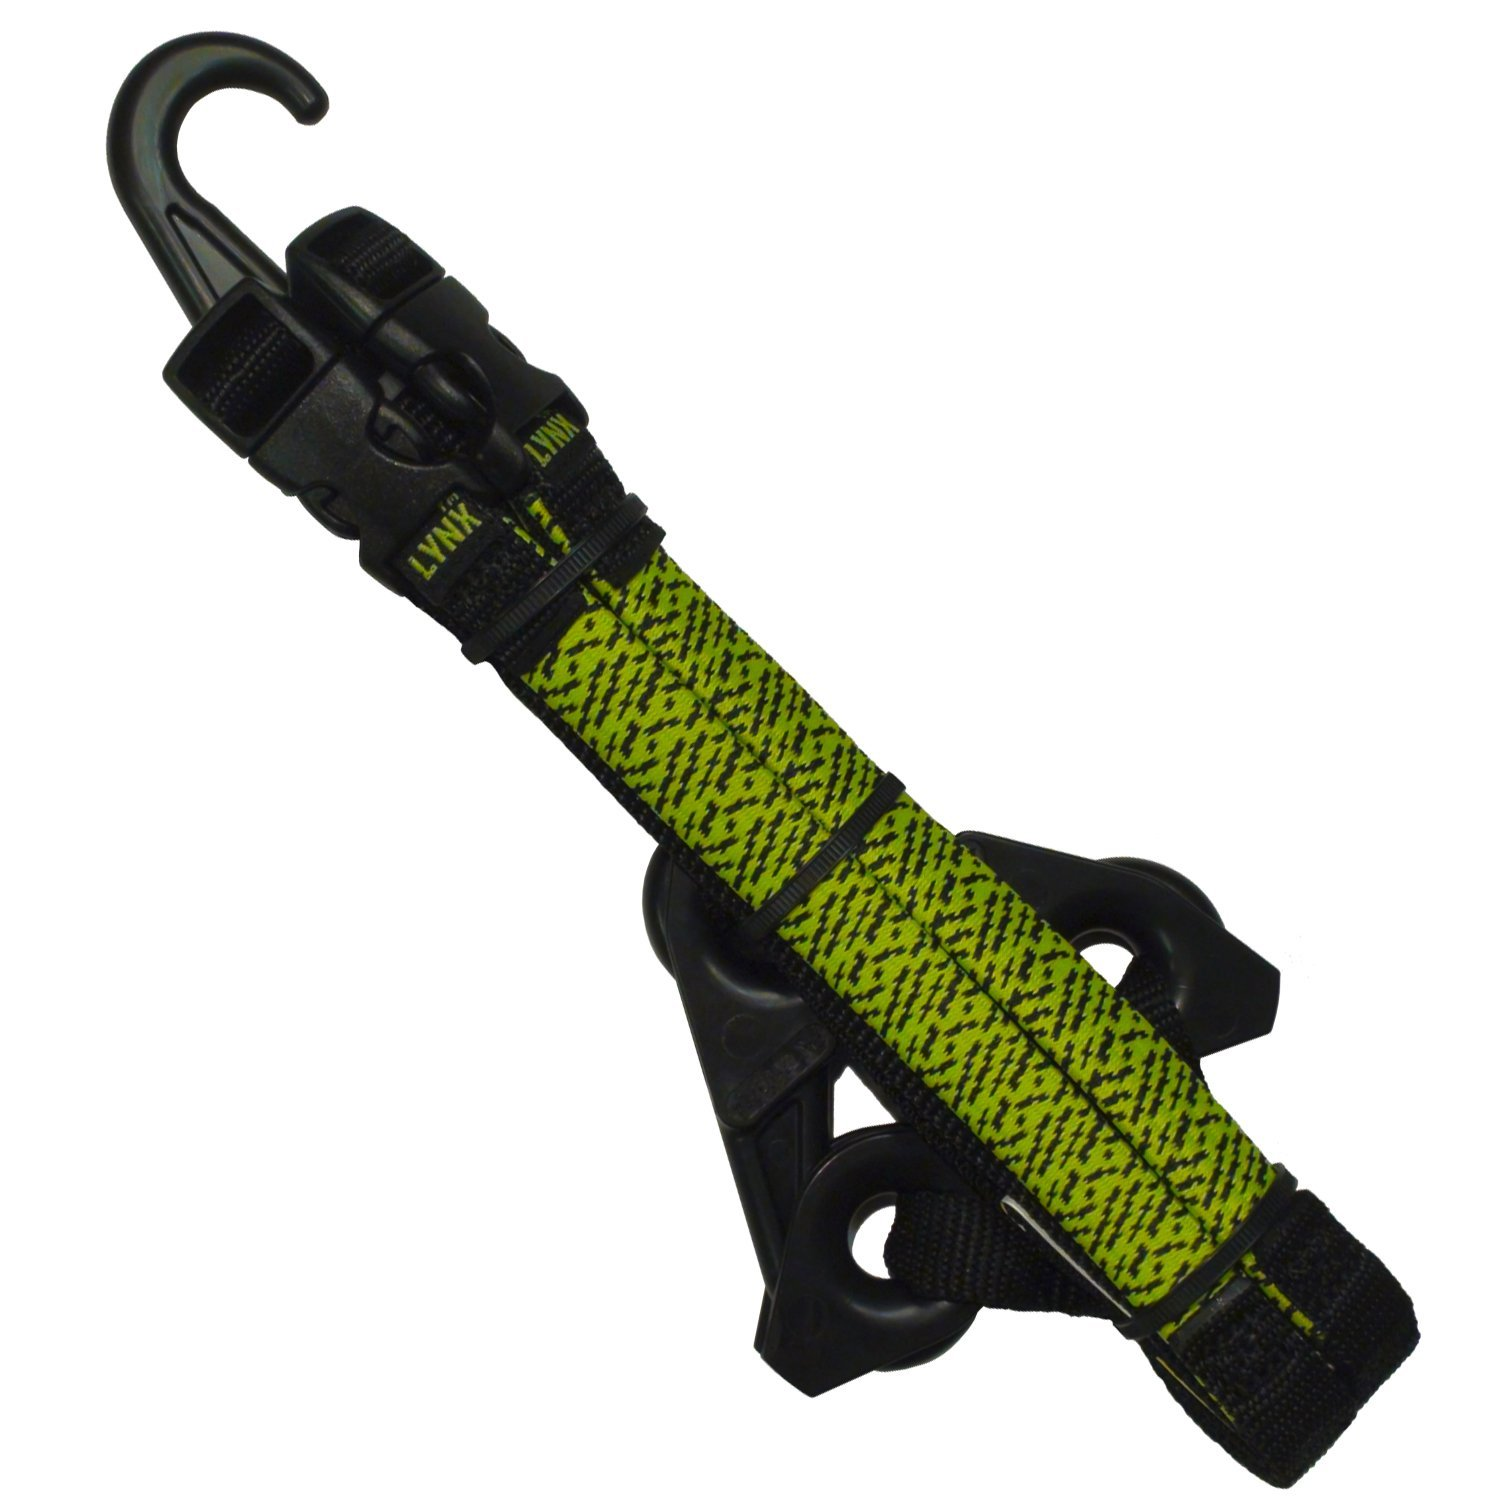 LYNX Hooks® Hi-Viz Green Adjustable, Interlocking Gear Straps